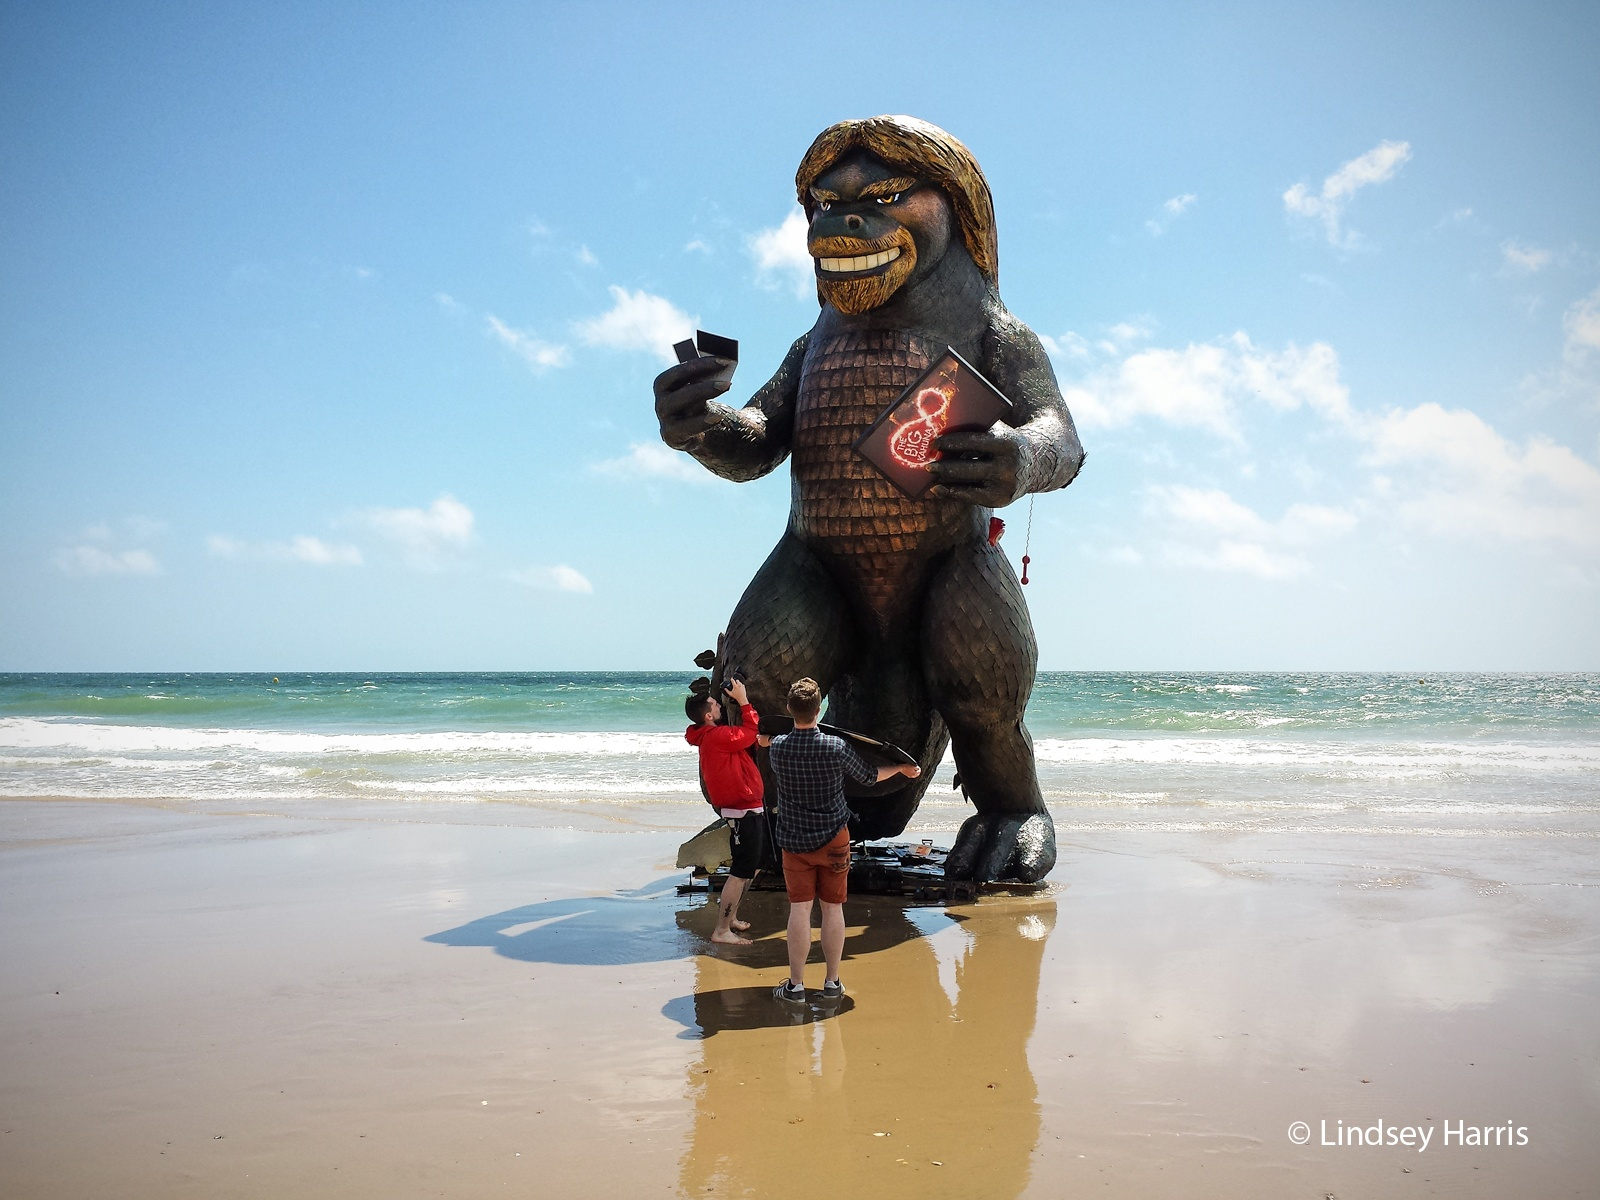 #BigKahunaSpotted - Richard Branson 'monster' on Bournemouth beach, June 2014. .